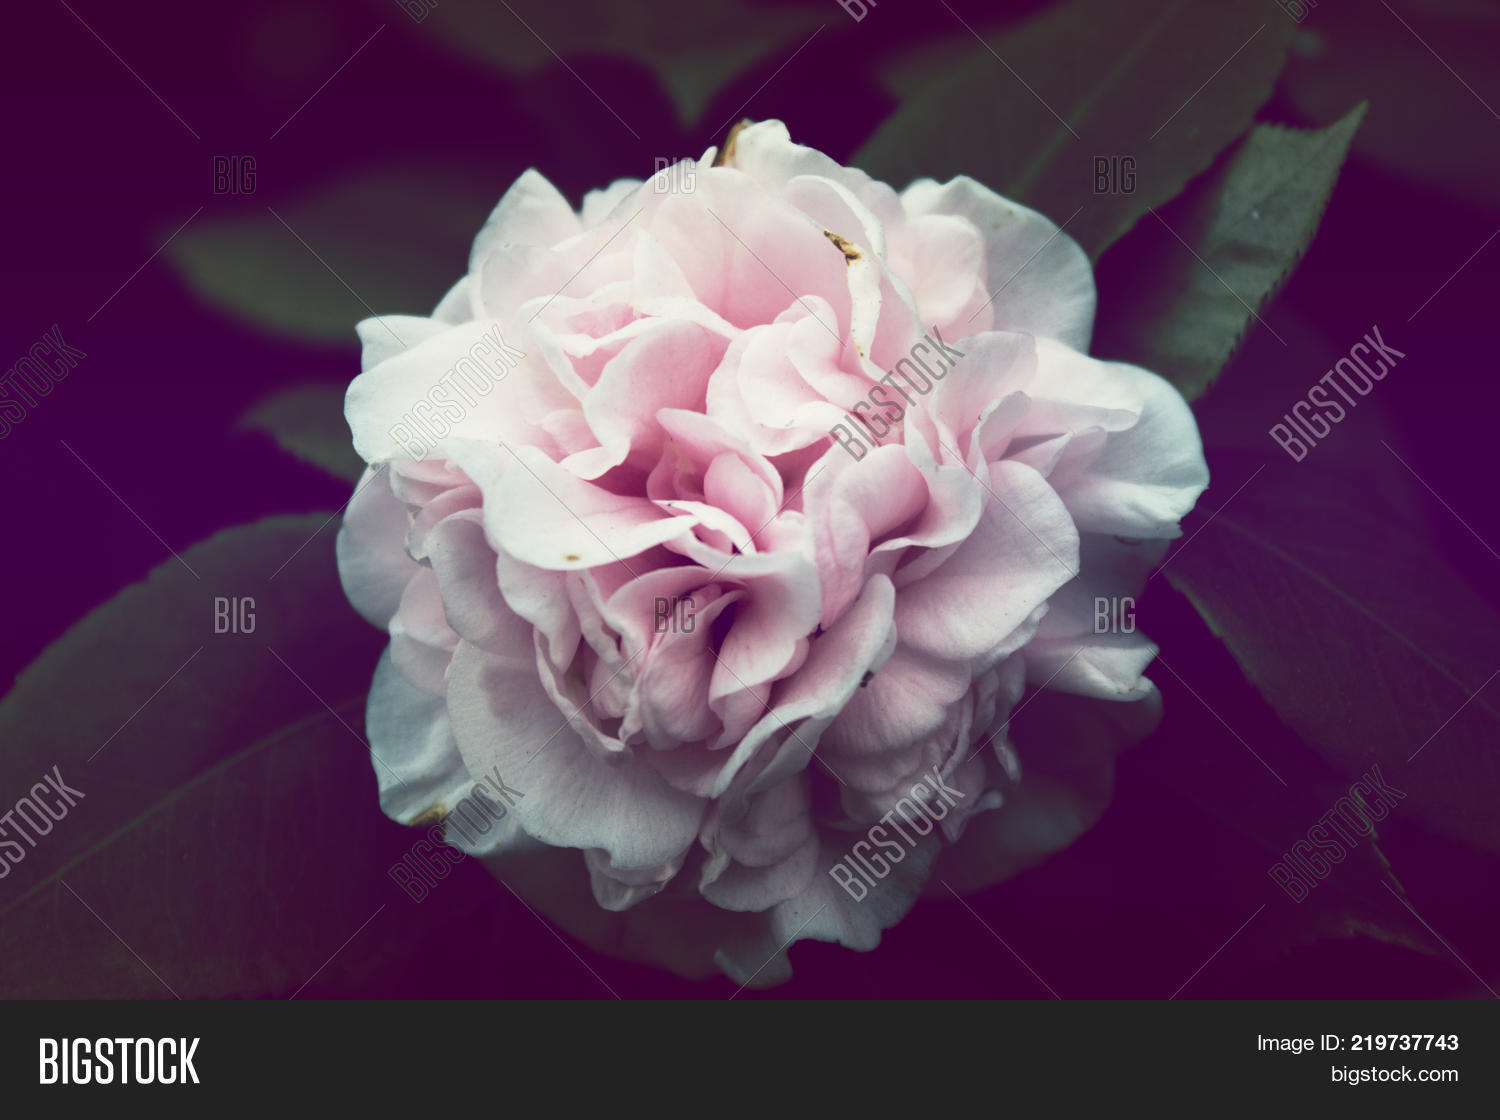 Pink Flower Background Image Photo Free Trial Bigstock